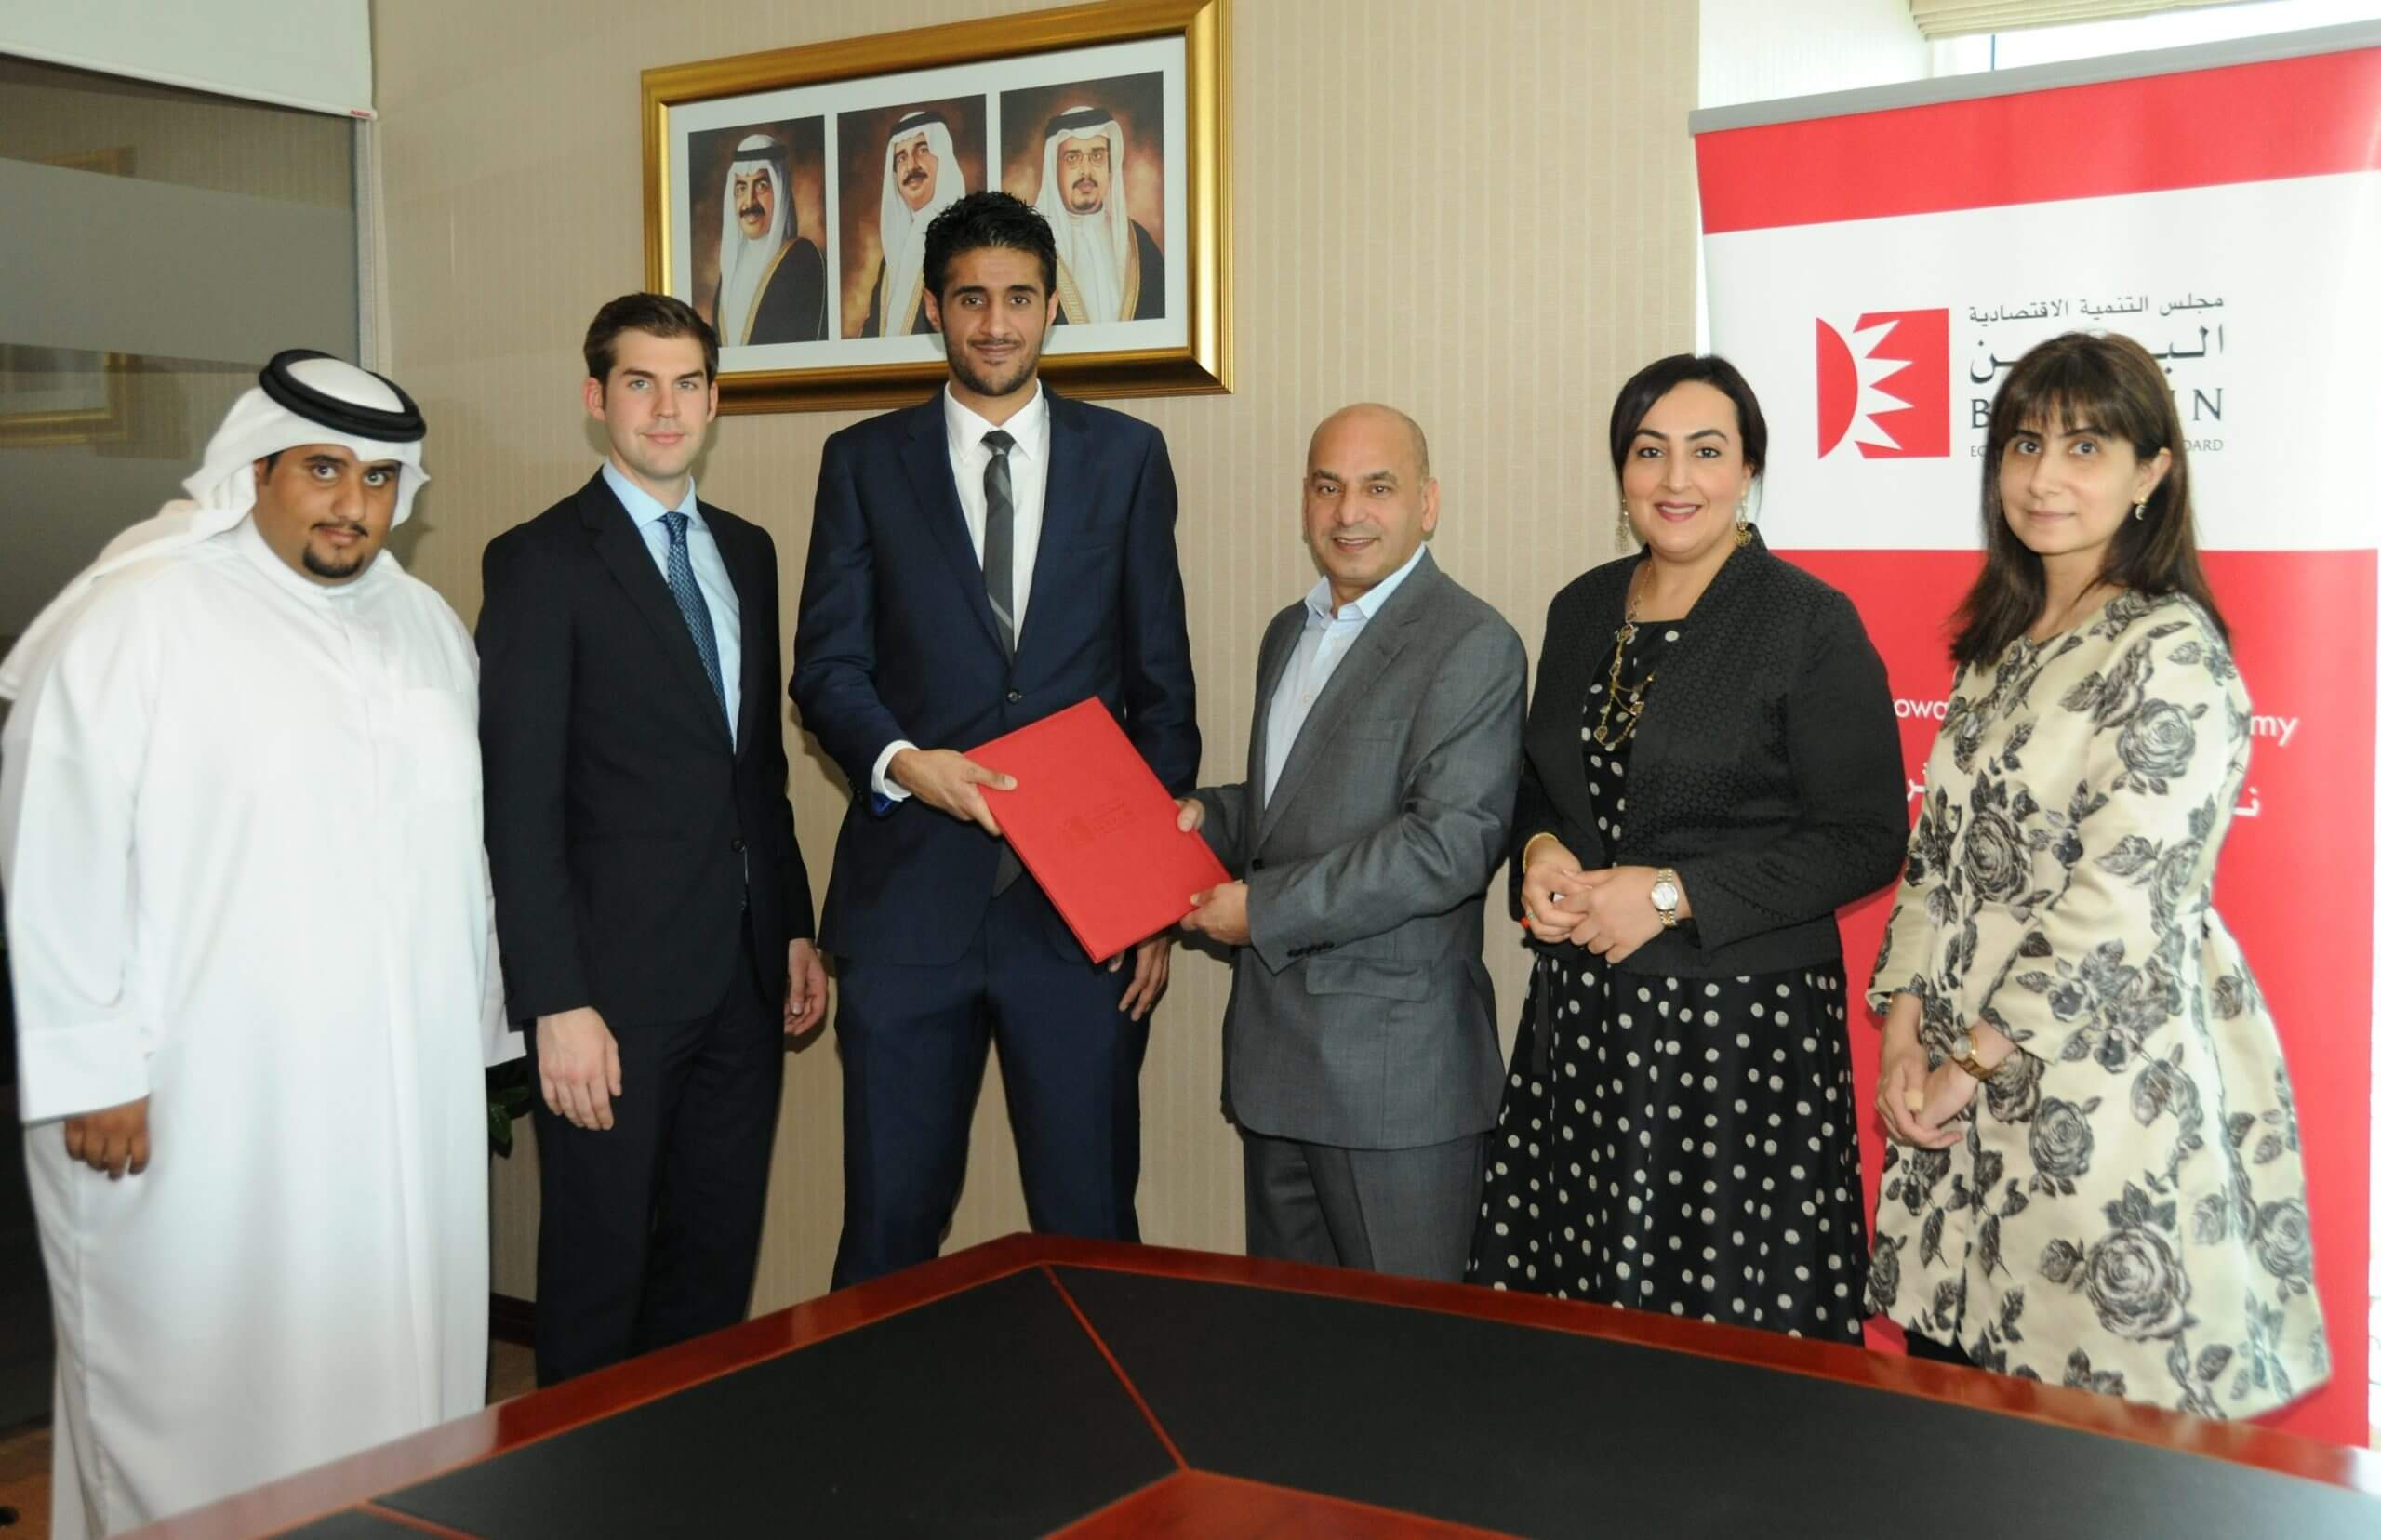 Representatives from T-Linx Technology Solutions Architect and the Bahrain Economic Development Board